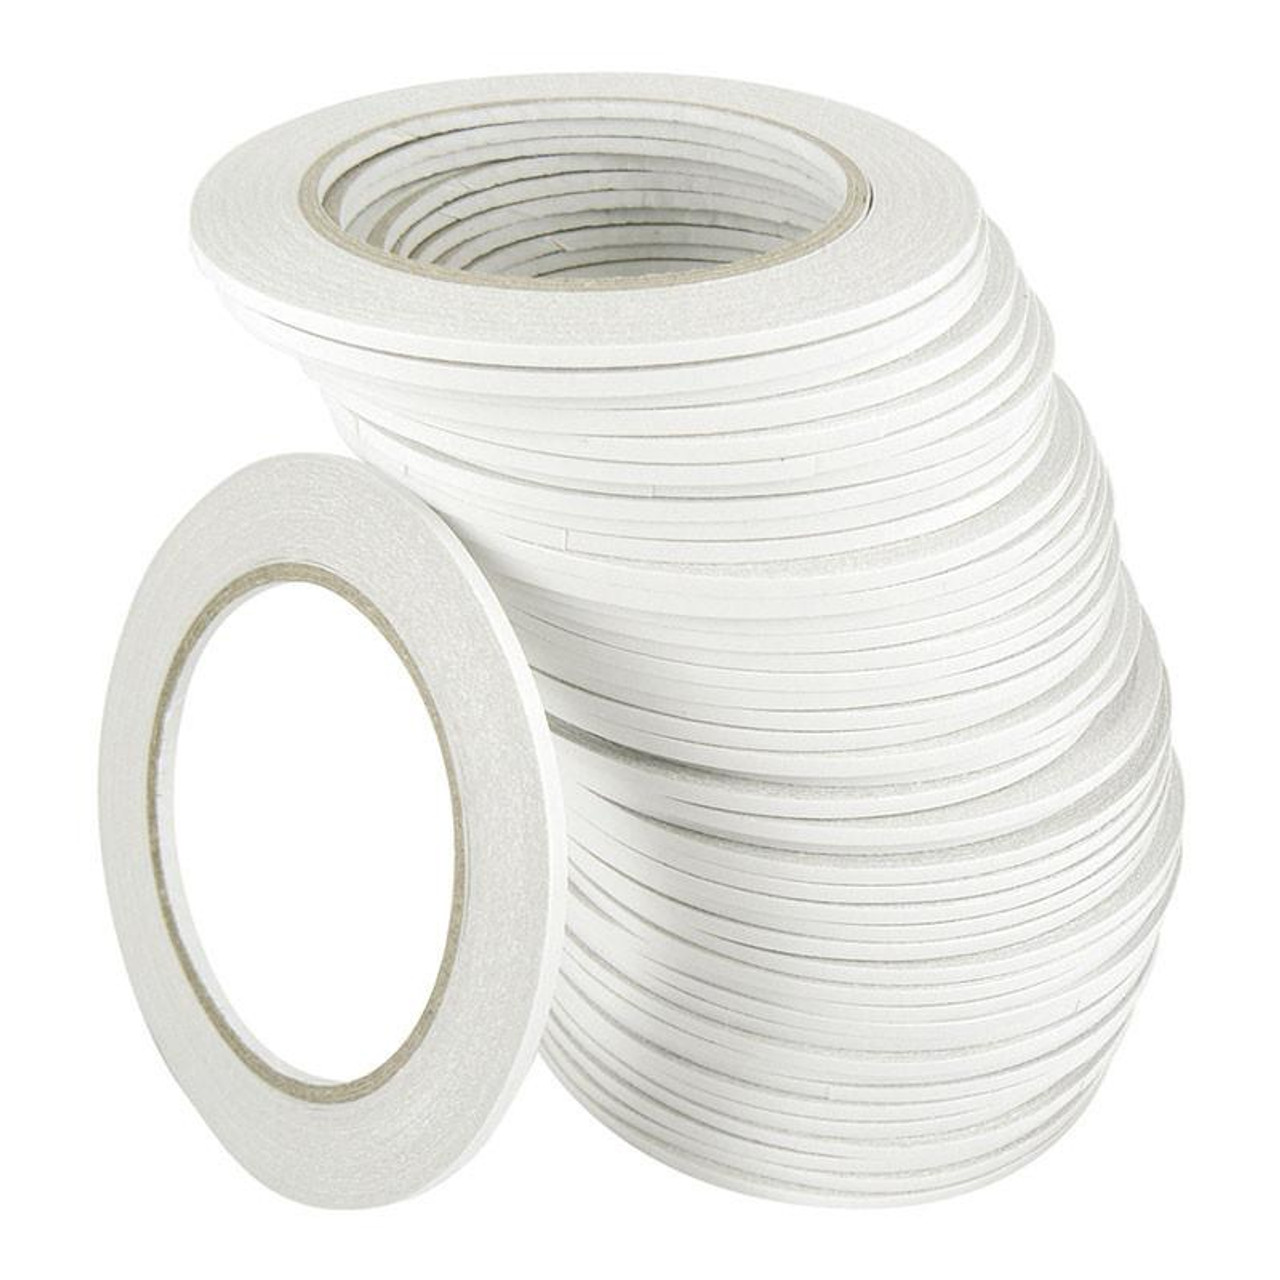 Couture Creations Double-Sided Tape 3mm x 25m - Bulk - 48 Pieces (AD90015)